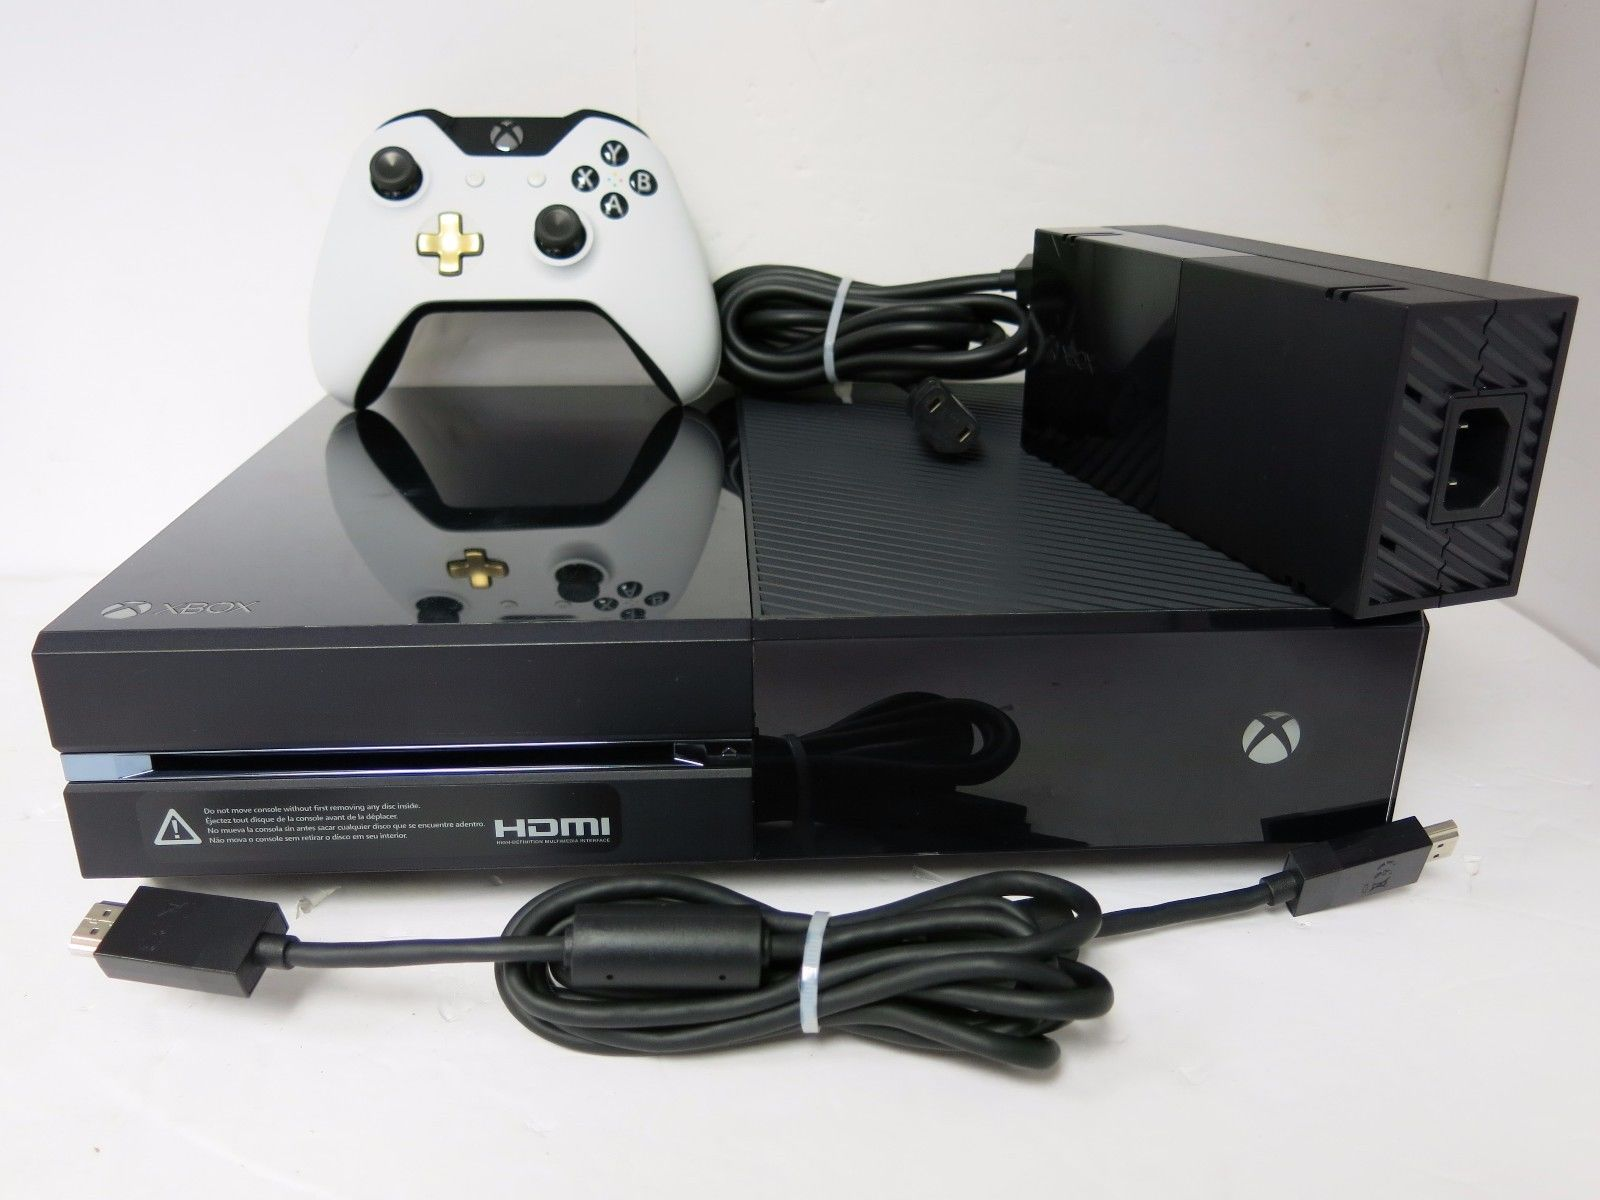 Xbox One console model 1540 1tb Hard Drive    Has power supply and brand new controller,    $235